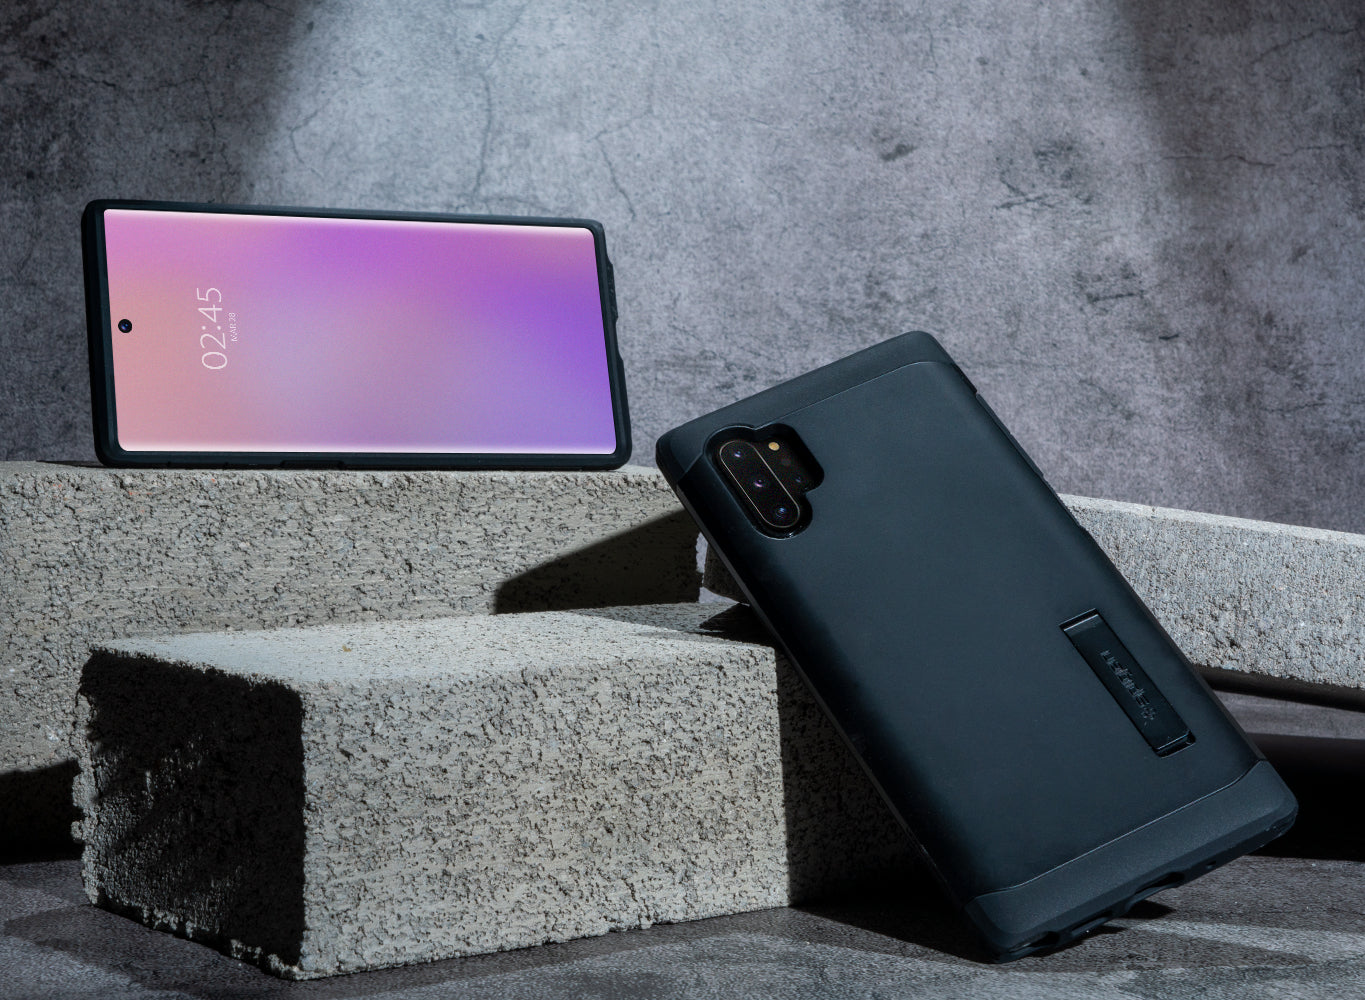 Two Galaxy Note 10 devices. The lower Note 10 device has the Tough Armor black case on it. The devices are propped up onto cement blocks.